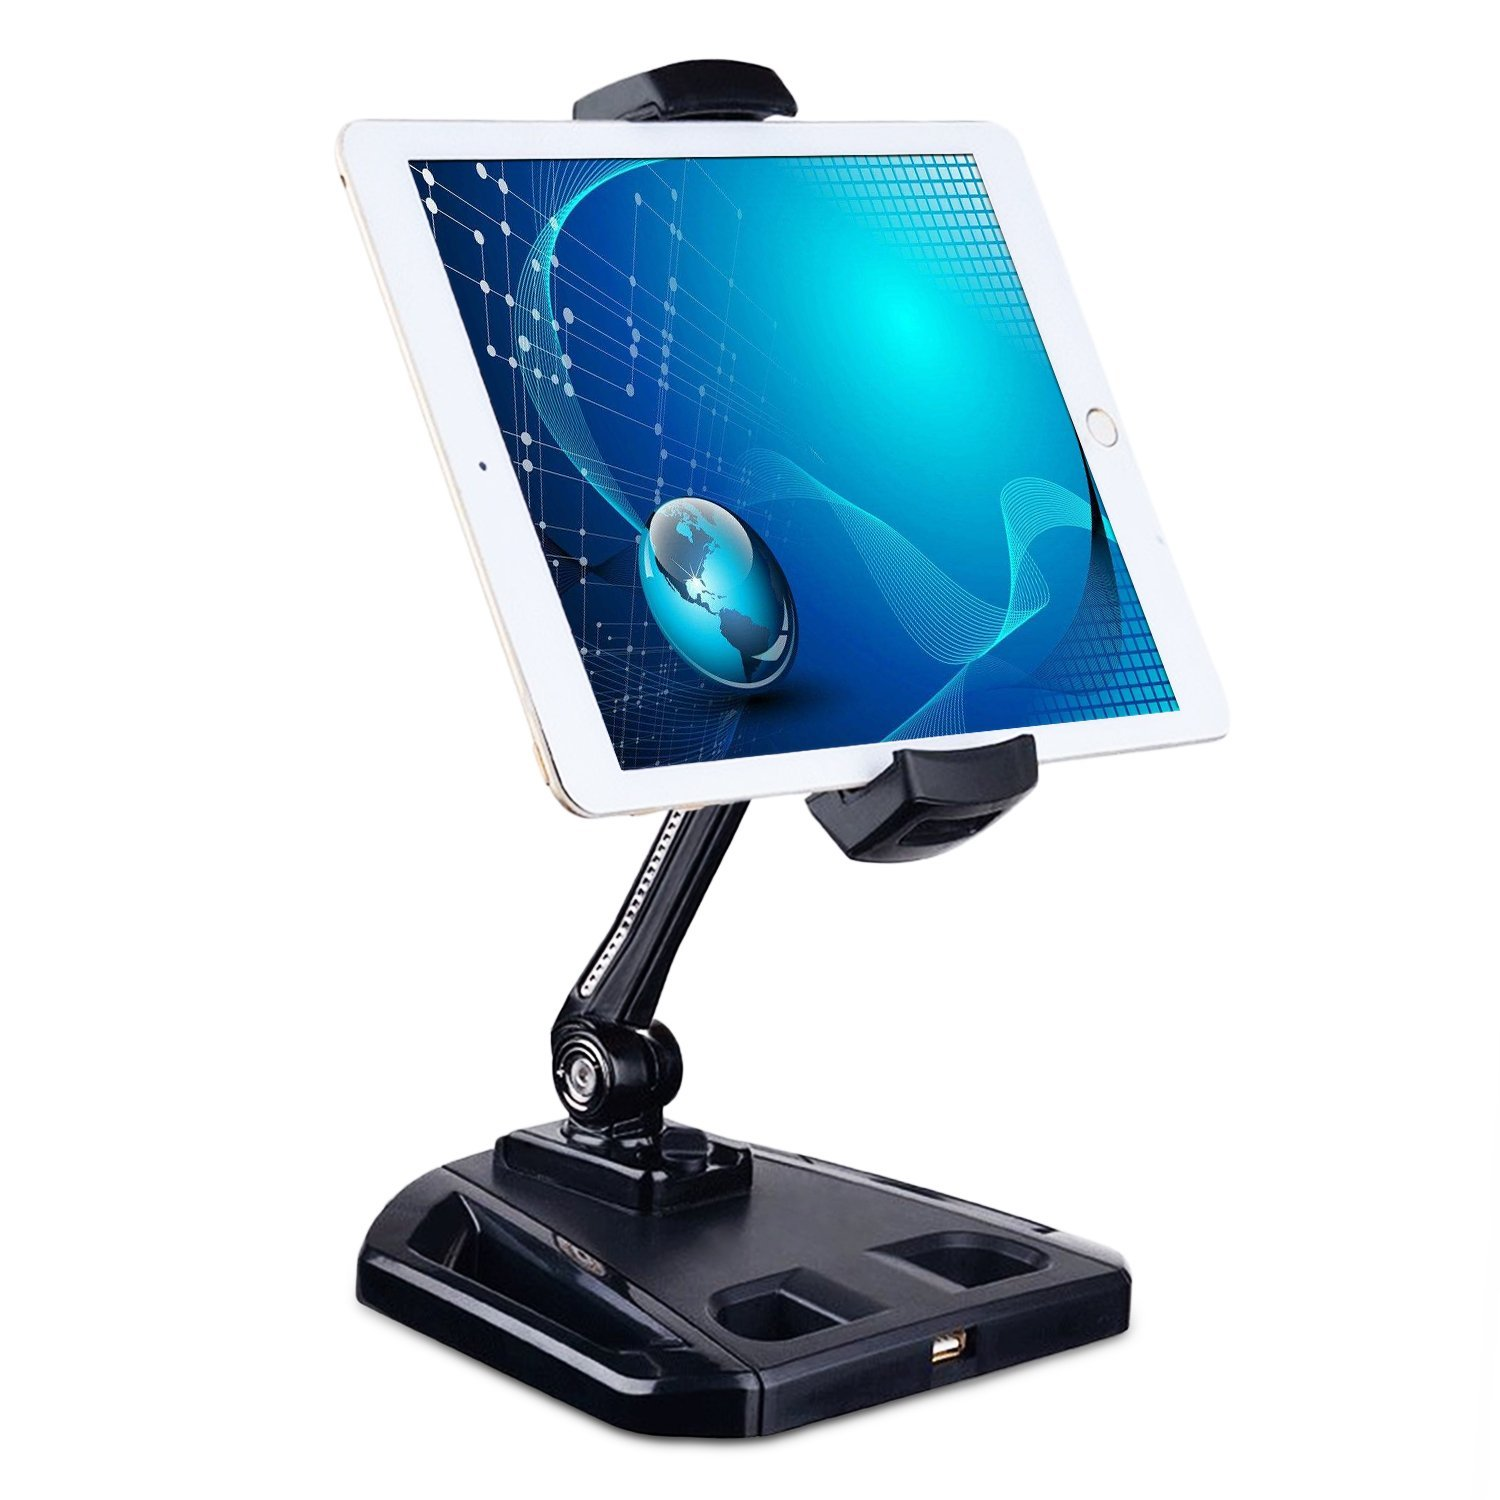 YaFex Tablet Mount Stand - 360 Degree Rotation Adjustable Aluminum Tablet Holder 4 to 11 Inches for iPad, iPhone, Kindle and Samsung with Non-slip Silicone Pad and USB Port(Black)